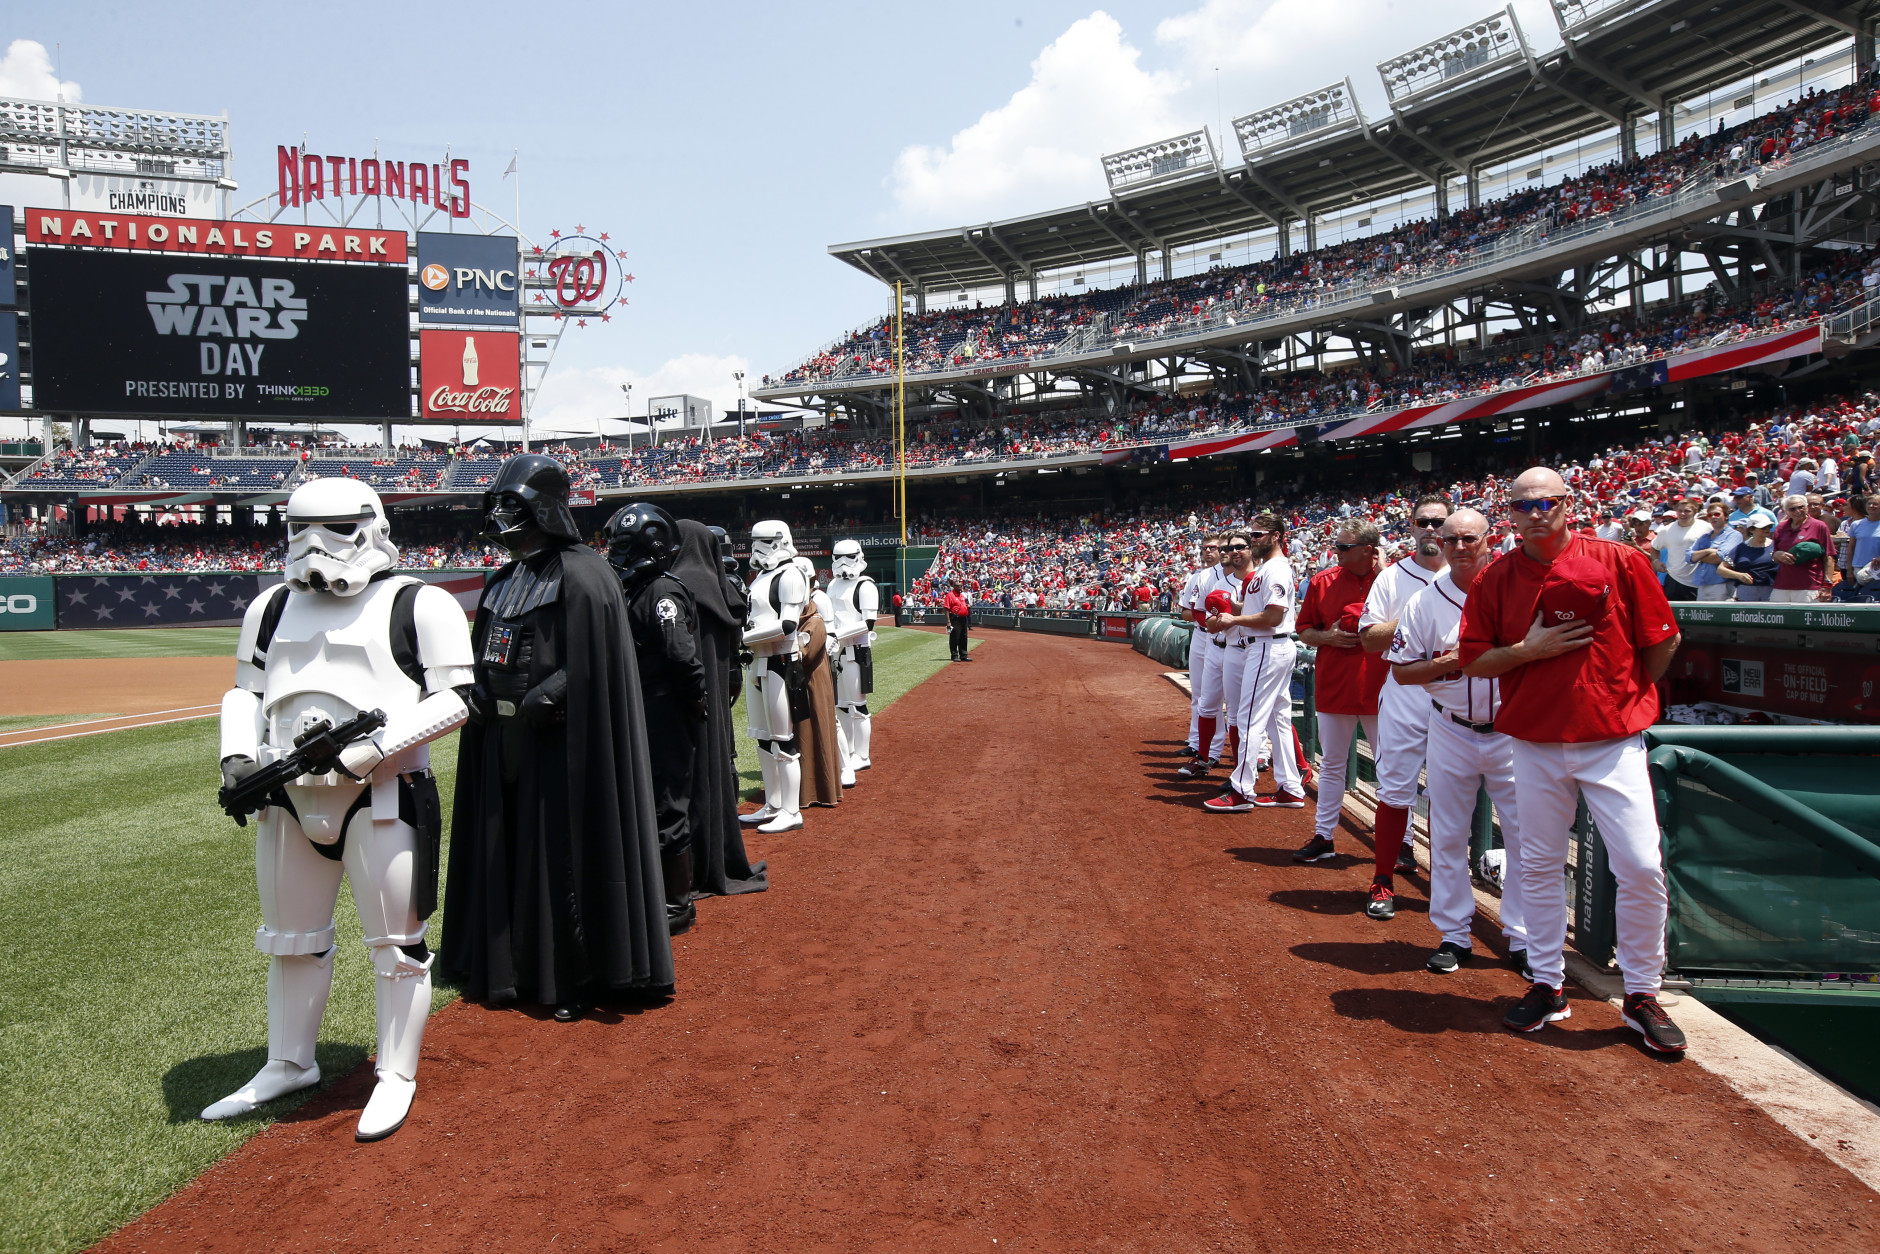 Star Wars characters in costume stand with the Washington Nationals after the national anthem on Star Wars day, before a baseball game against the Los Angeles Dodgers at Nationals Park, Sunday, July 19, 2015, in Washington. (AP Photo/Alex Brandon)